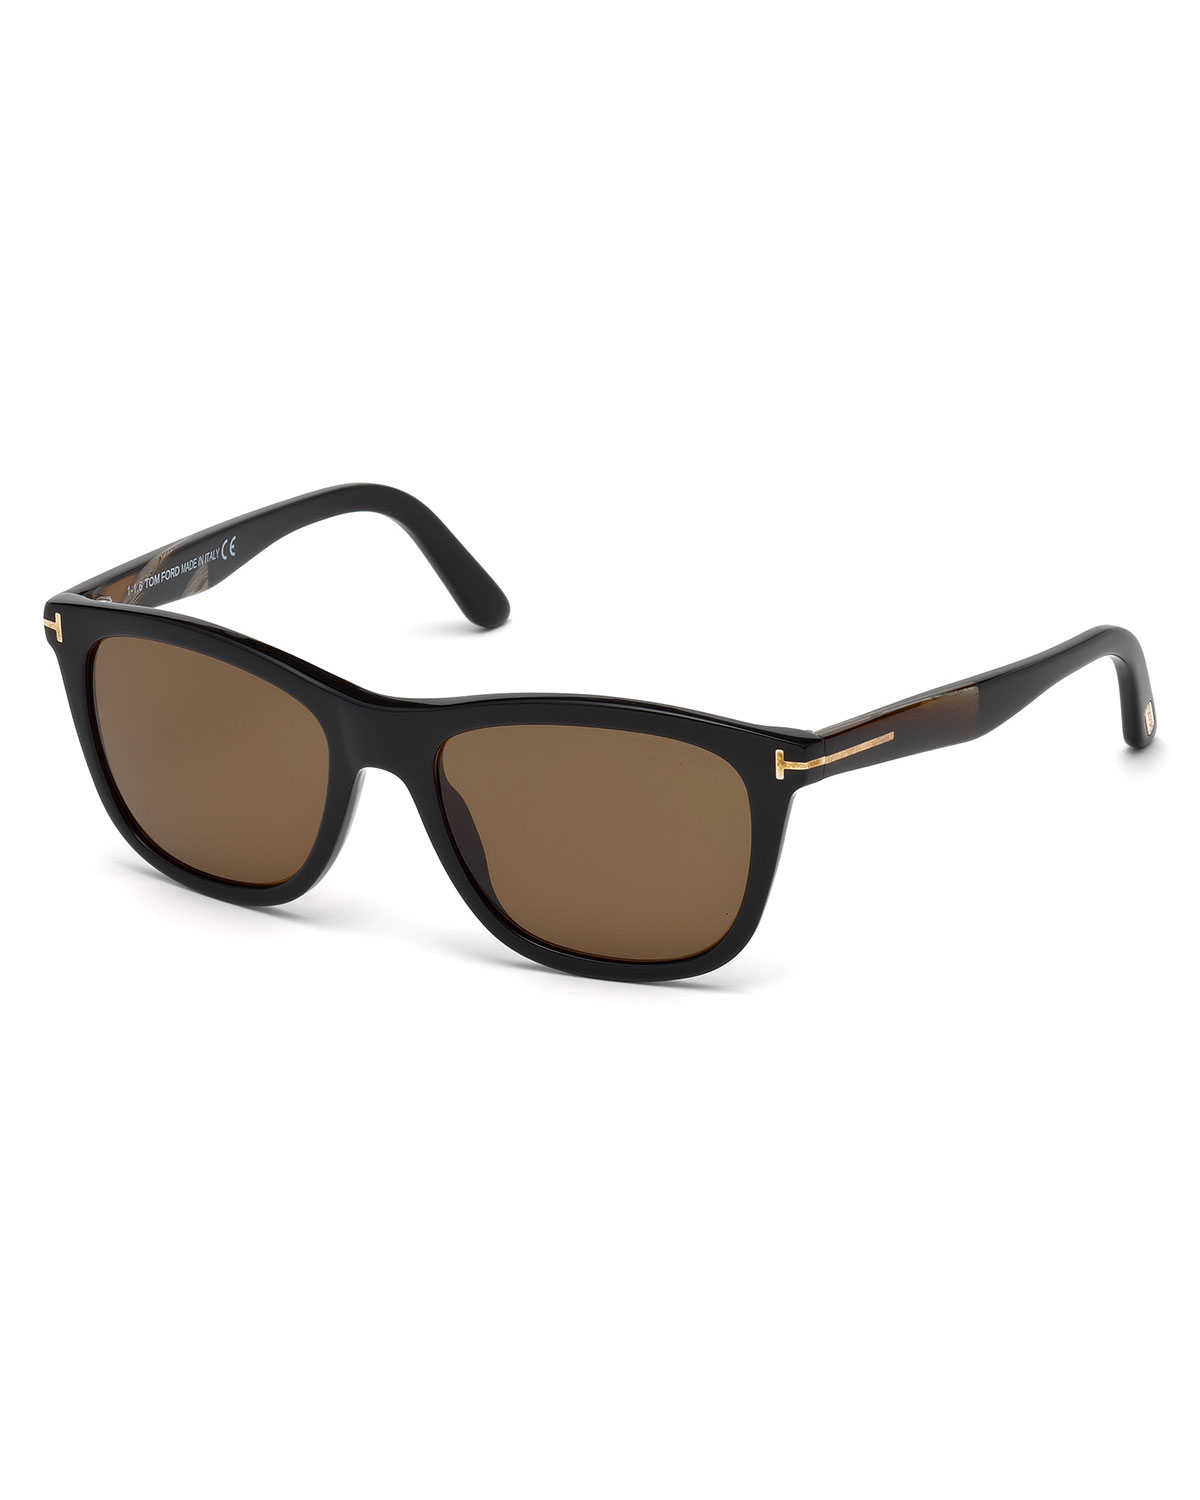 6ca74918bda TOM FORD Andrew Square Shiny Acetate Polarized Sunglasses